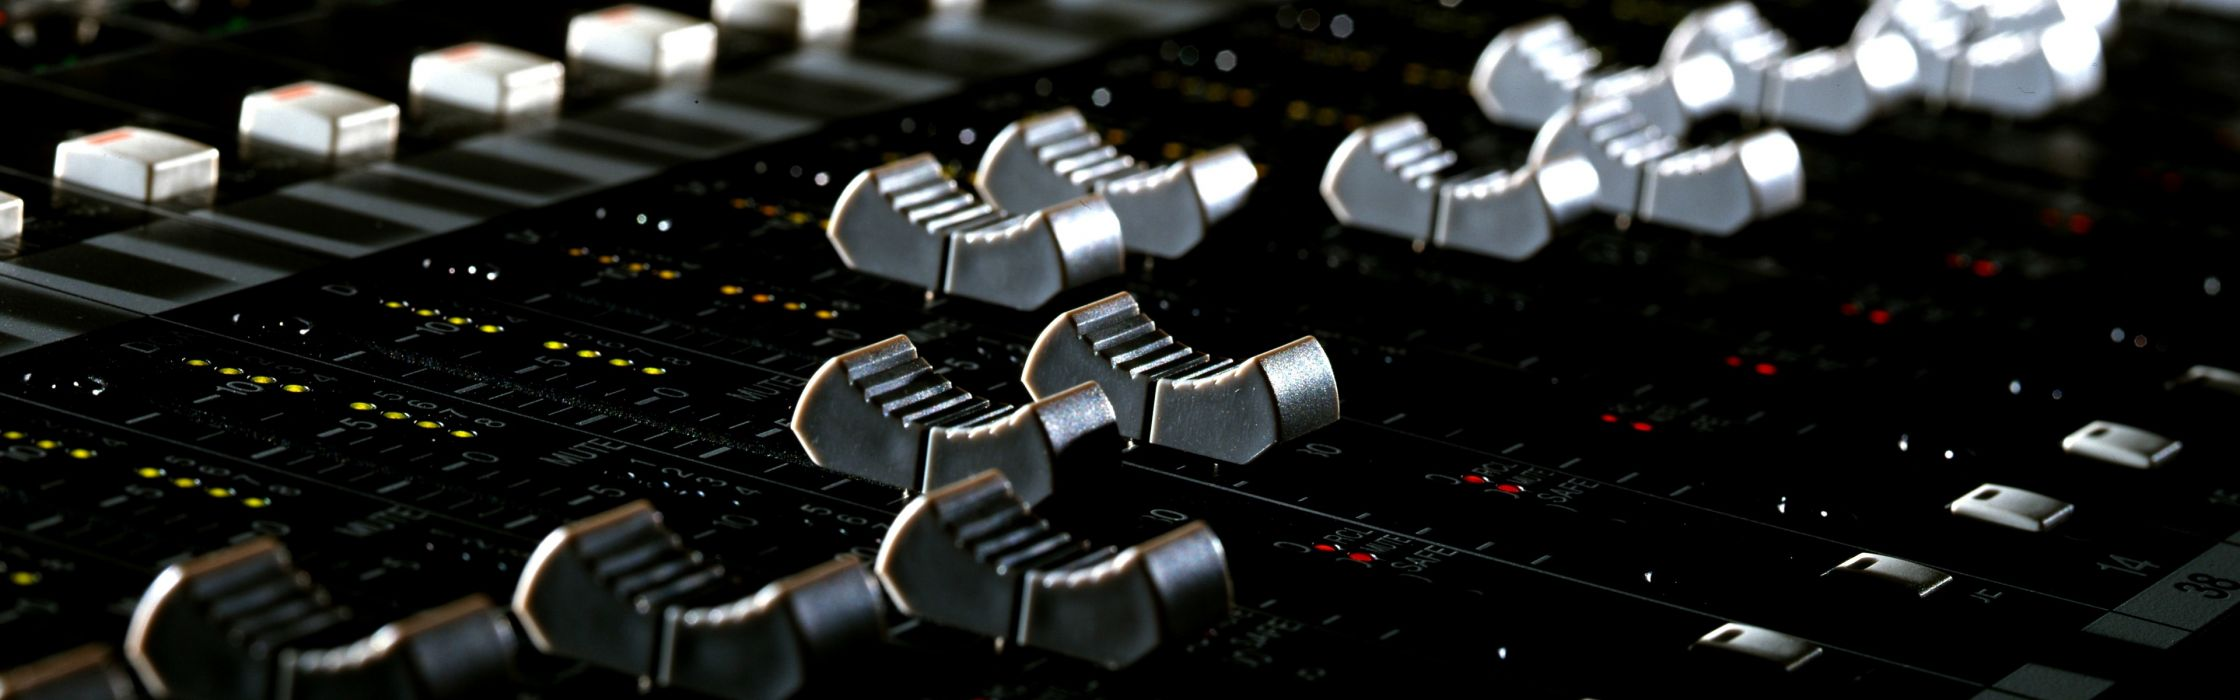 Music mixers dj  faders wallpaper